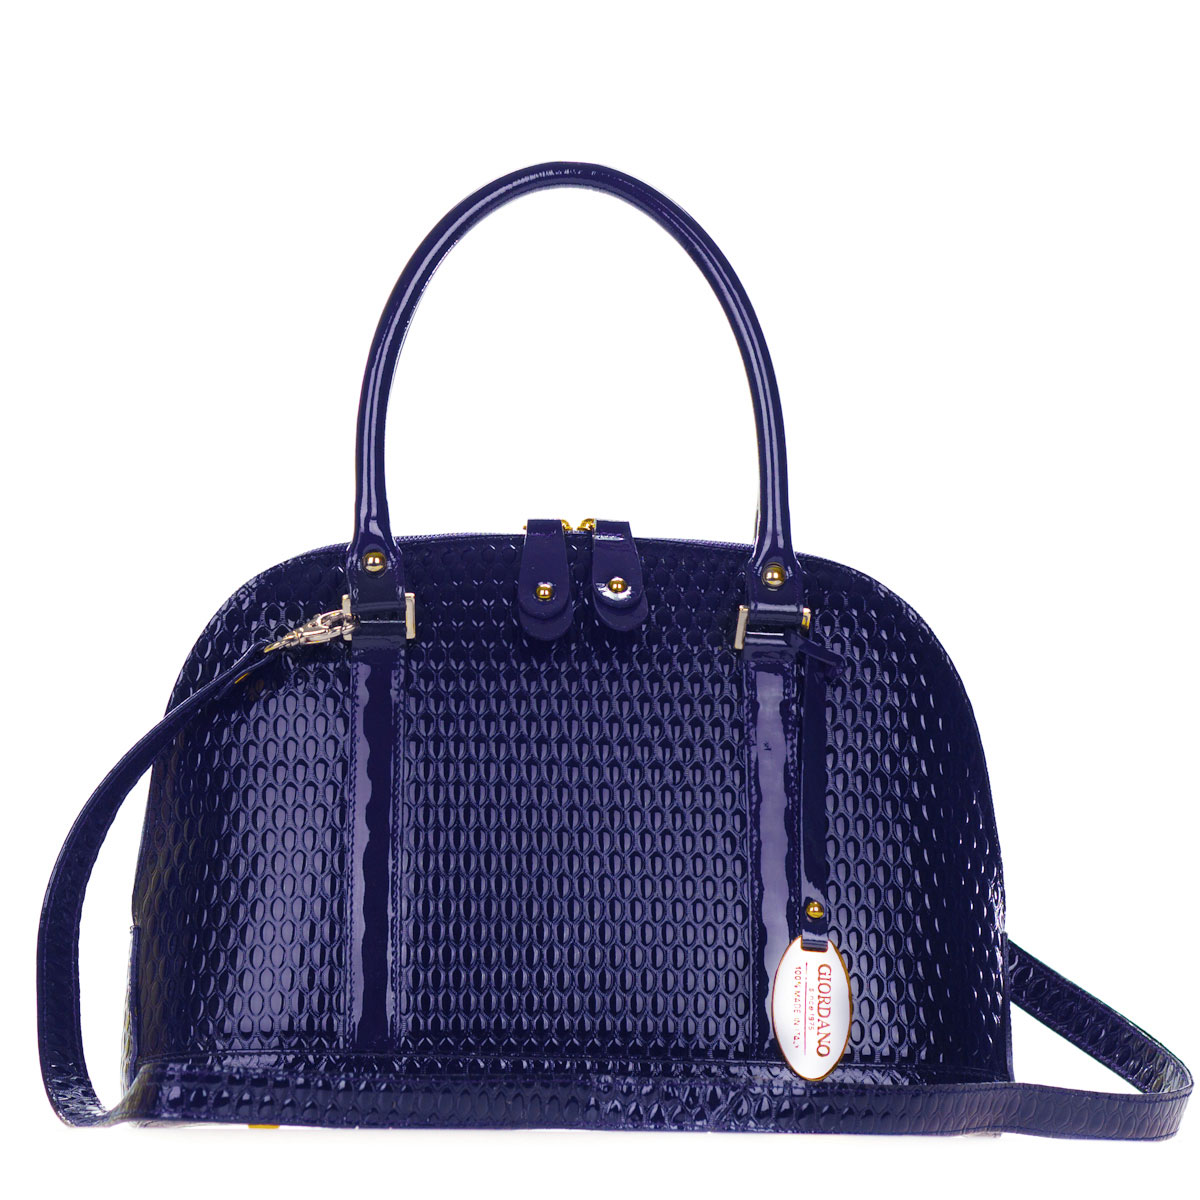 Giordano Italian Made Dark Navy Blue Patent Embossed Leather Structured Tote Handbag